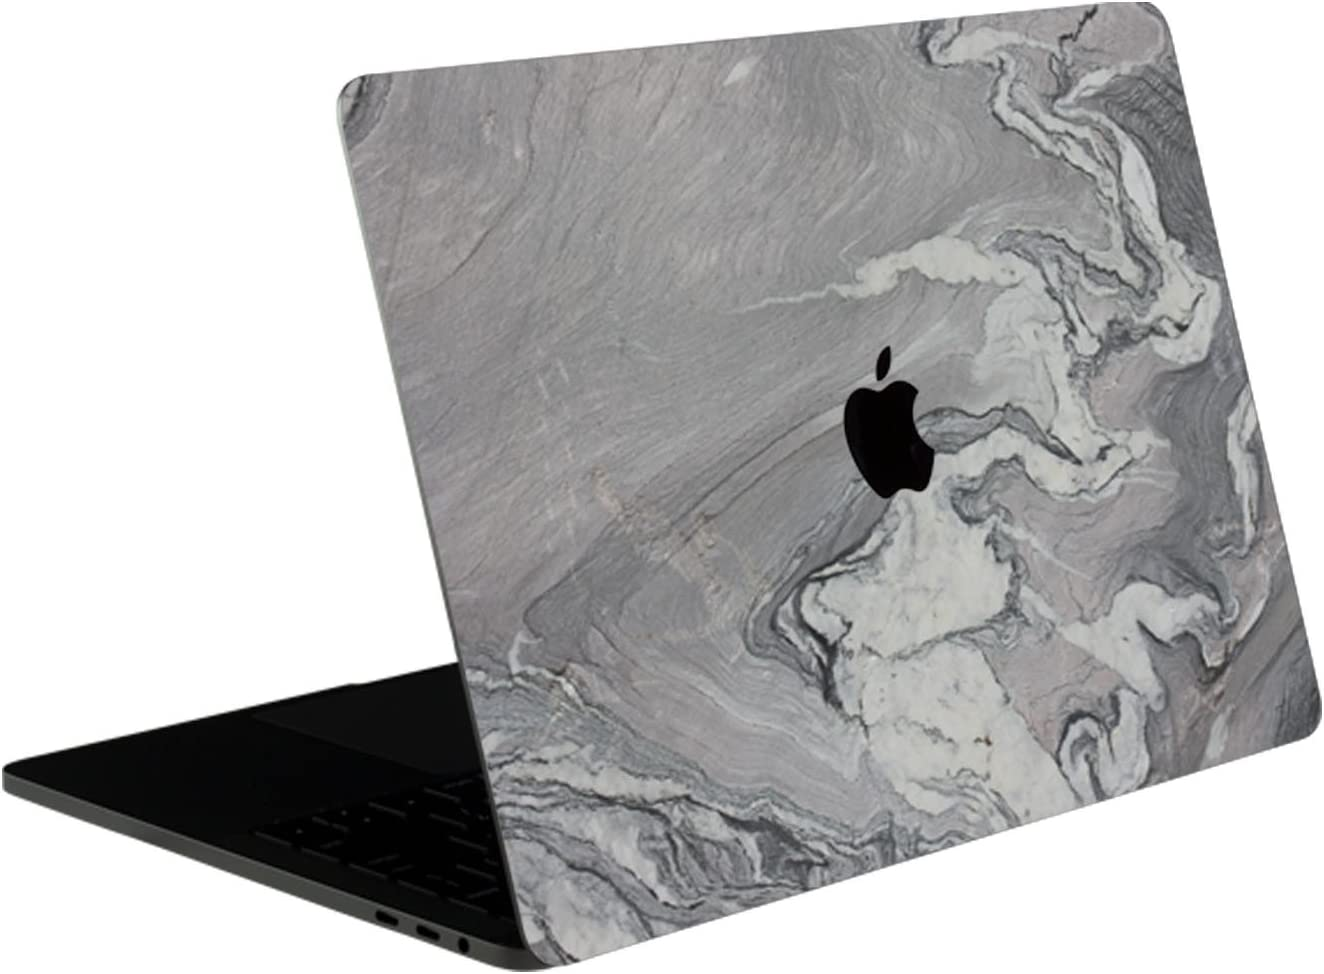 SOJITEK Silver Gray Marble Stone Texture 4-in-1, Full-Size 360° Protector Skin Decals Sticker MacBook Pro 15 Inch (2016 to 2019 Model with & w/o Touch Bar & ID) A1707 A1900 Black Keyboard Cover